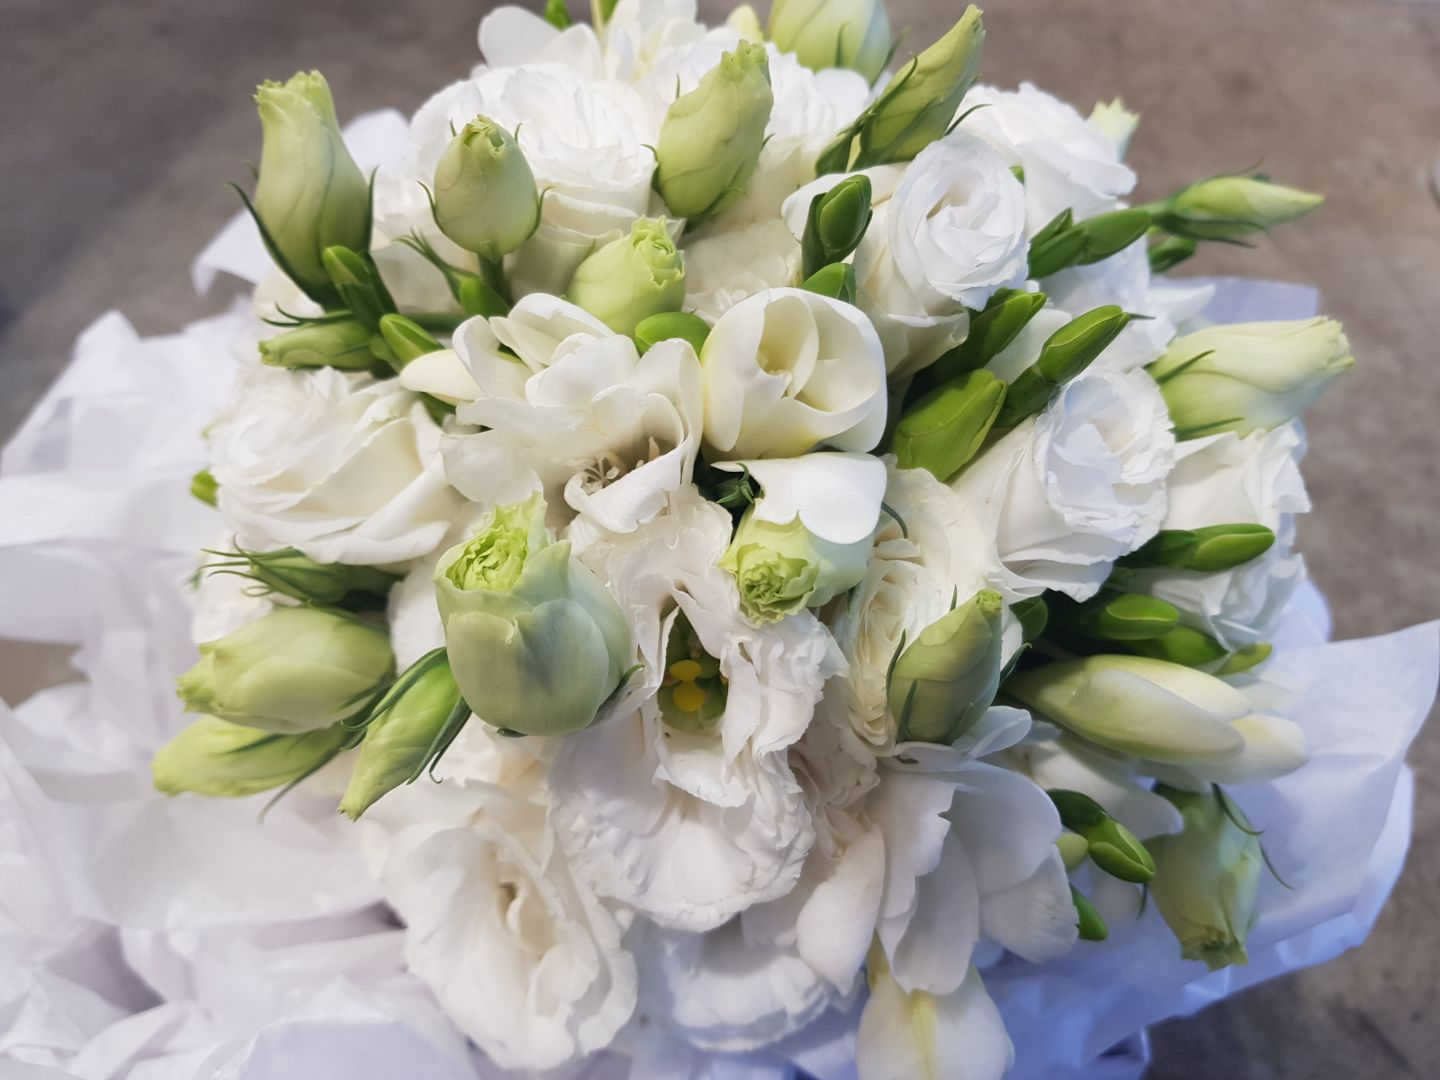 Kylie wedding bouquet 2.jpg